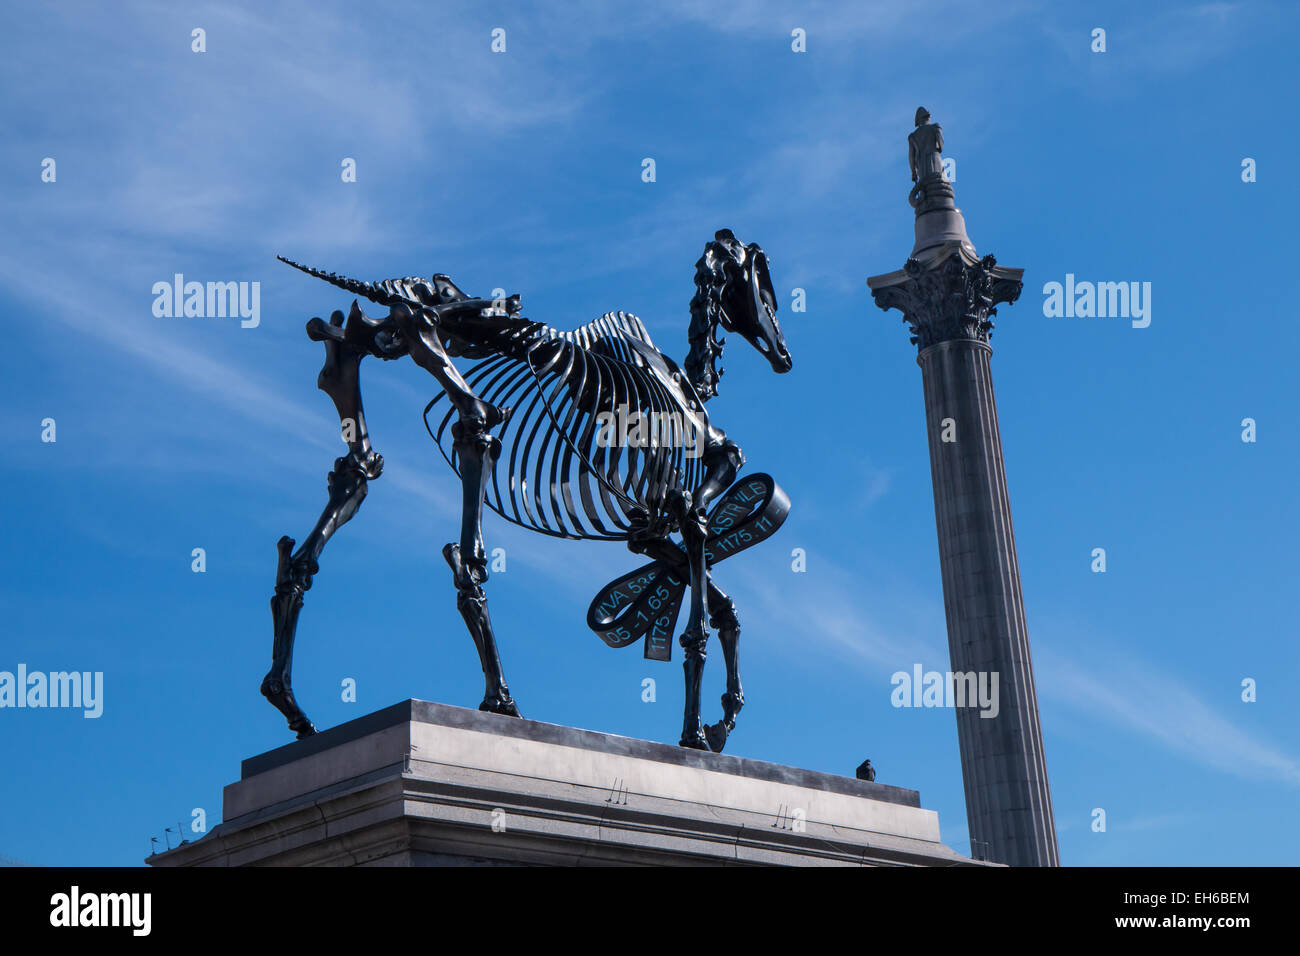 Fourth Plinth sculpture, Gift Horse by Hans Haacke in Trafalgar Square - Stock Image